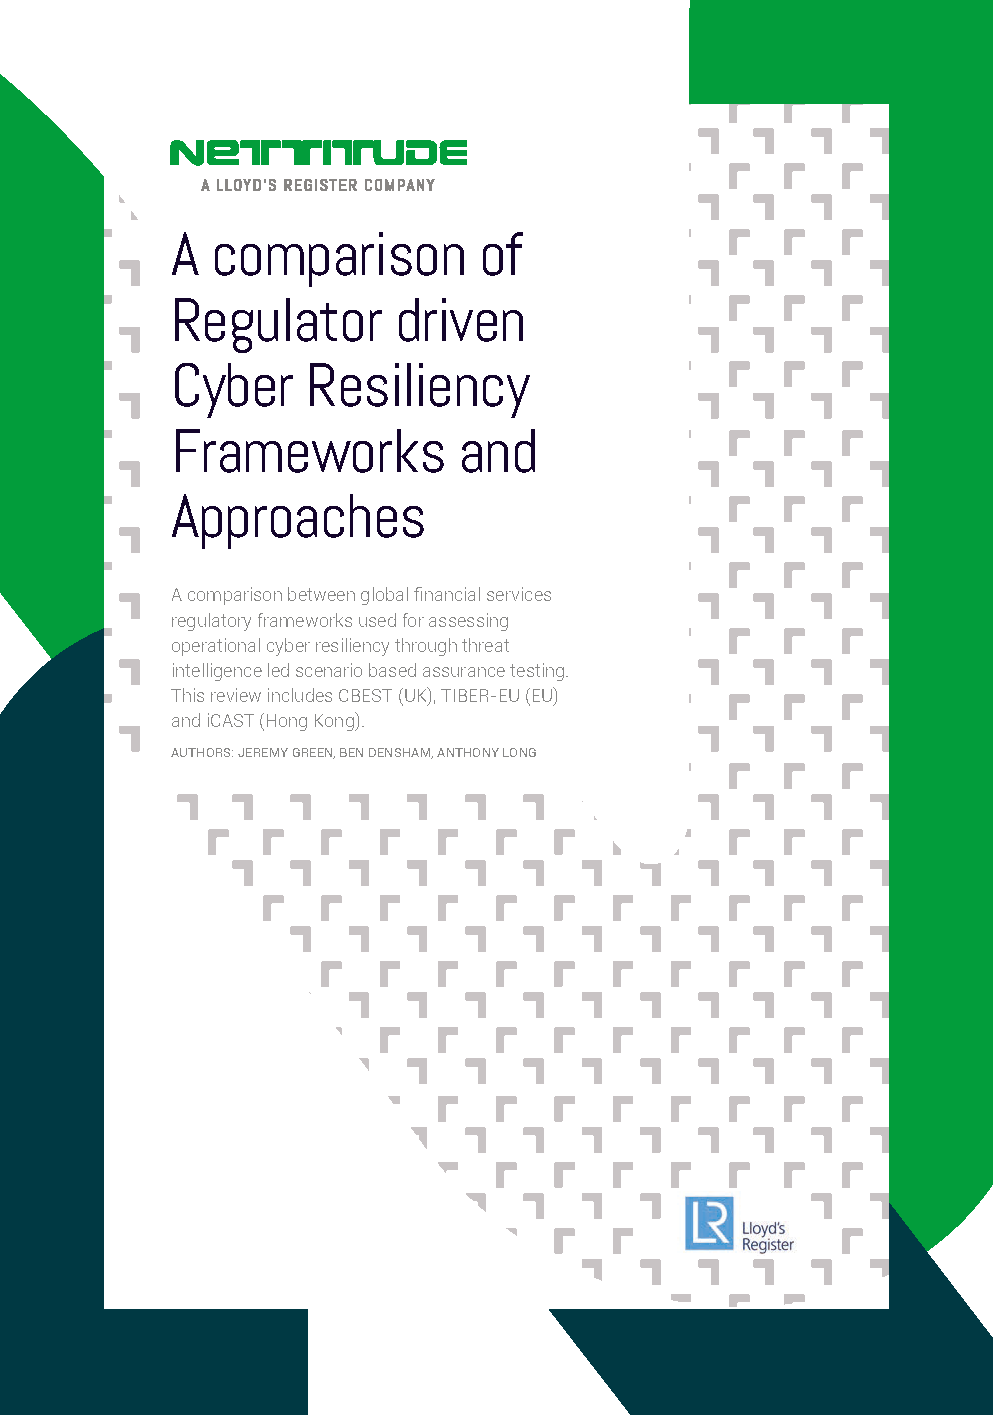 Pages from A comparison of Regulatory Driven Cyber Frameworks_Financial Whitepaper_October_2020